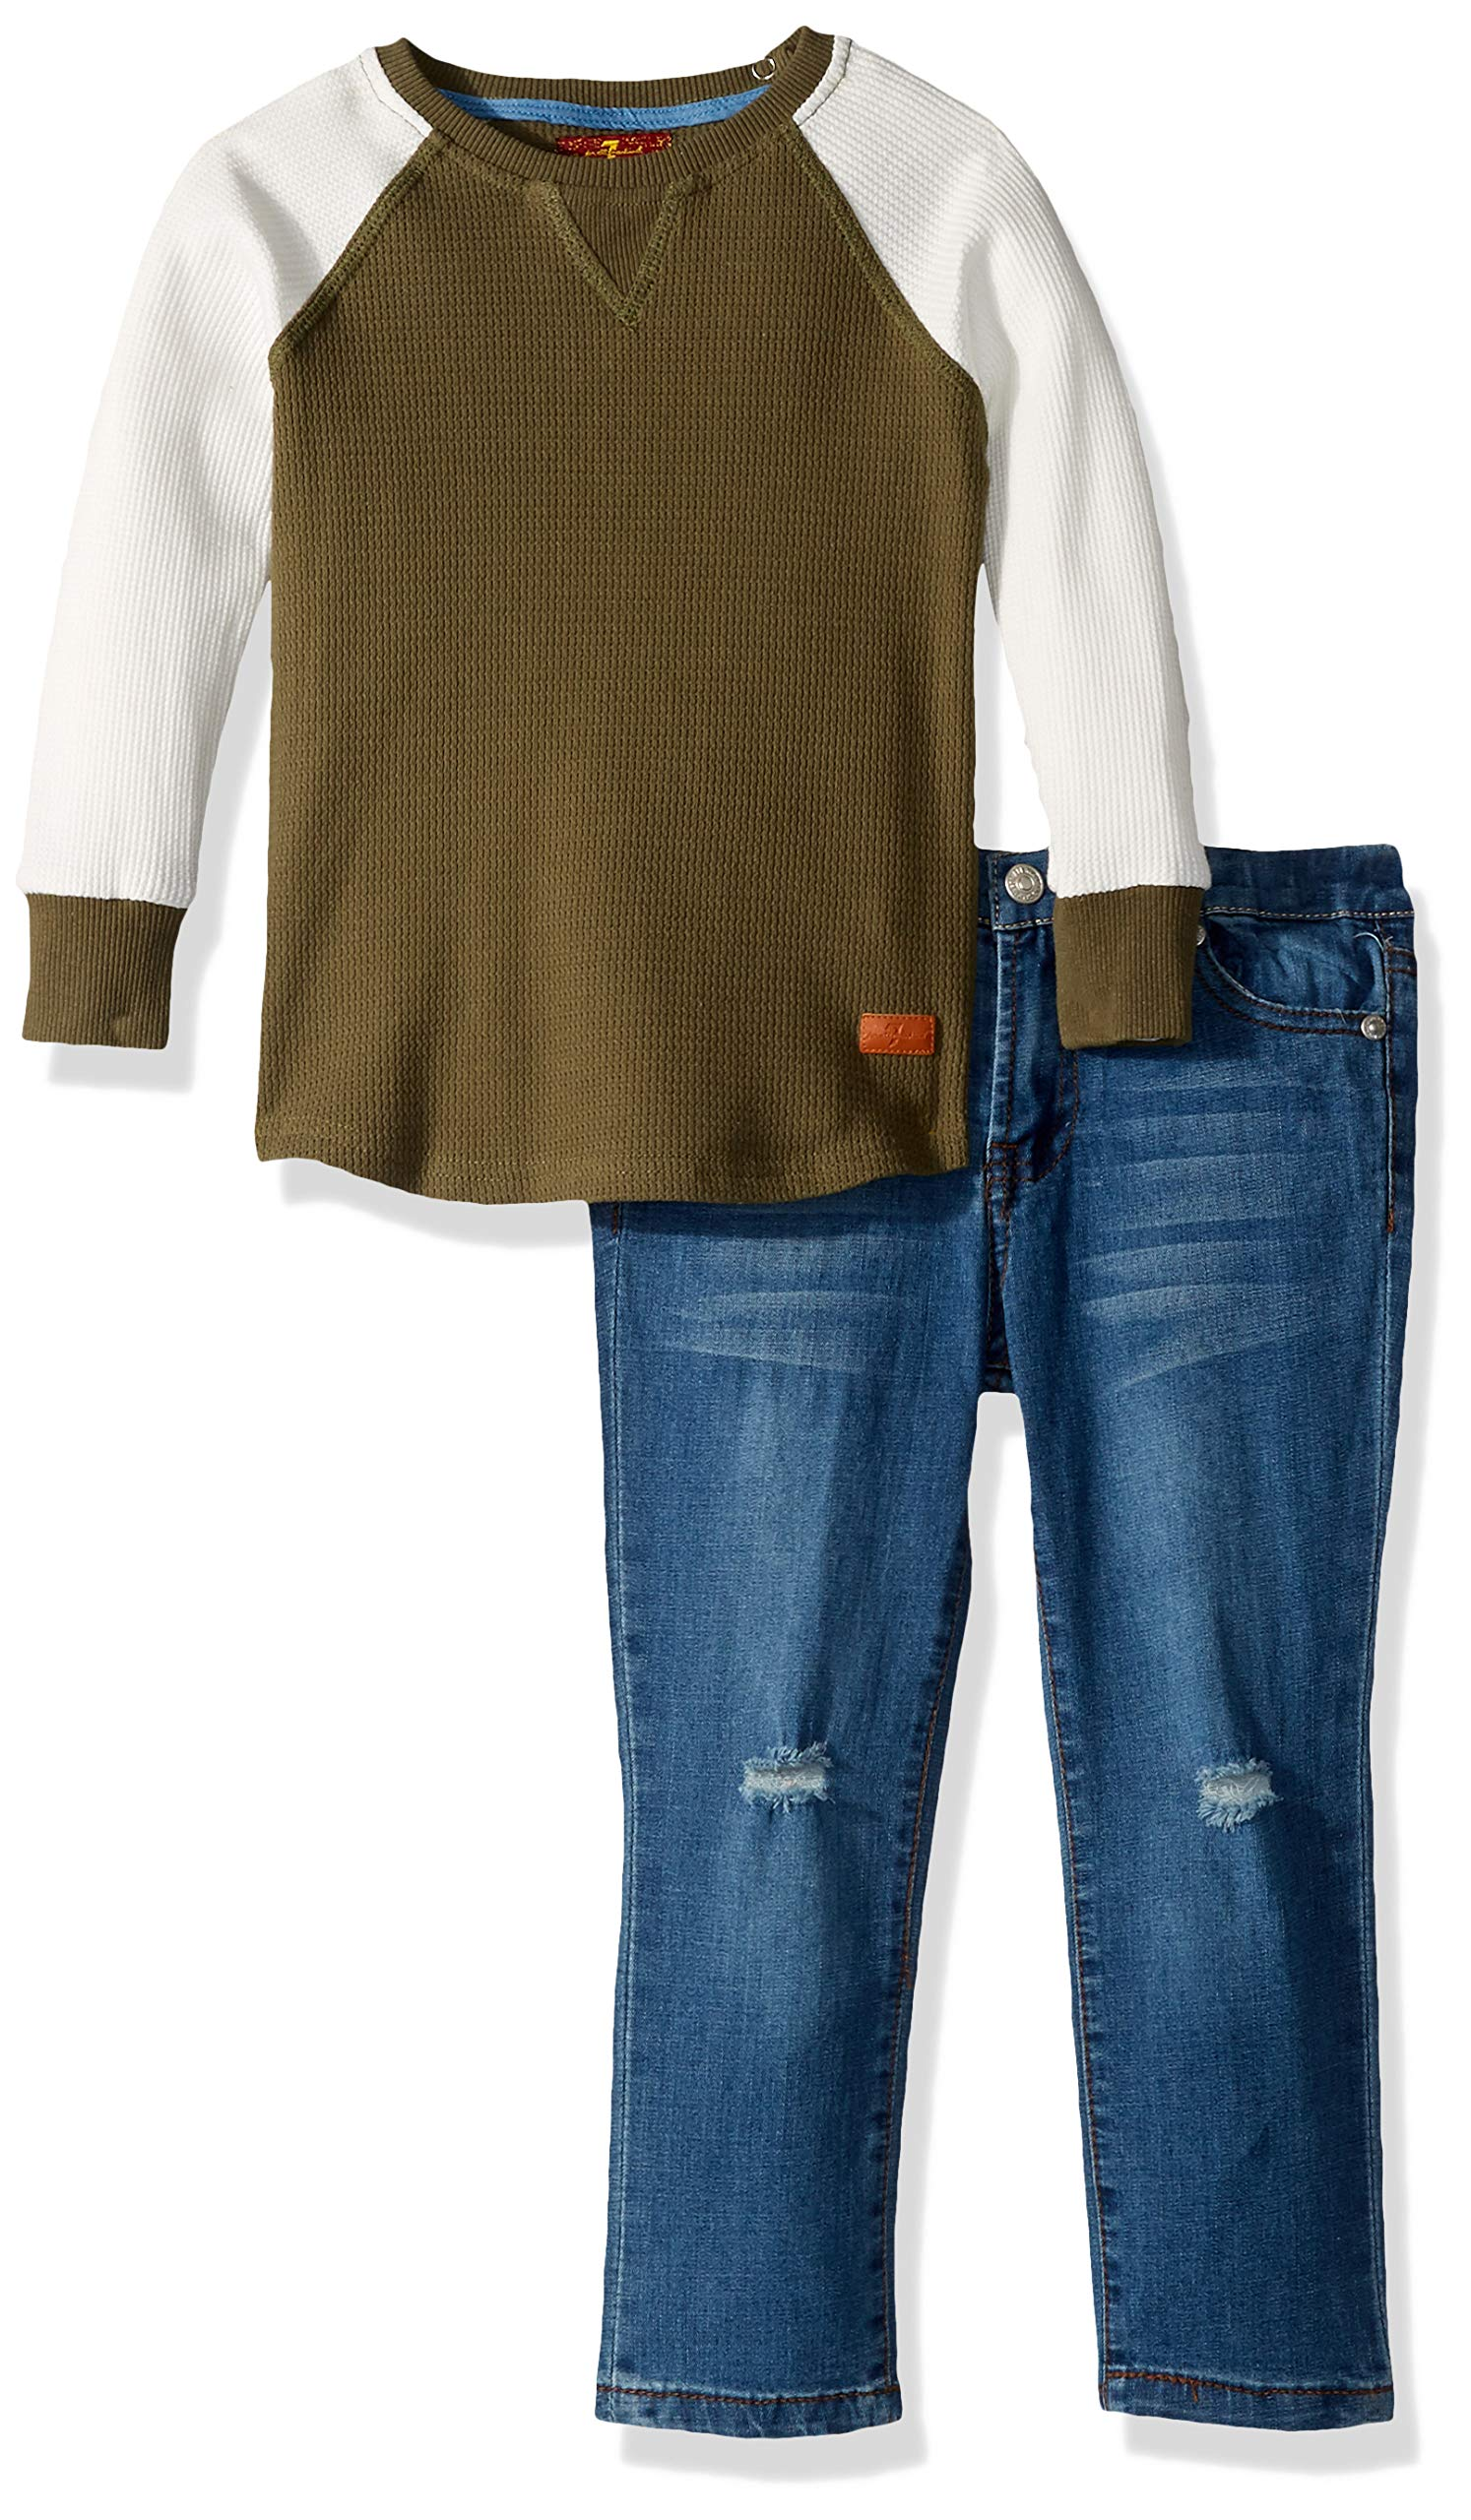 7 For All Mankind Boys' Toddler Thermal Shirt and Denim Jean Set